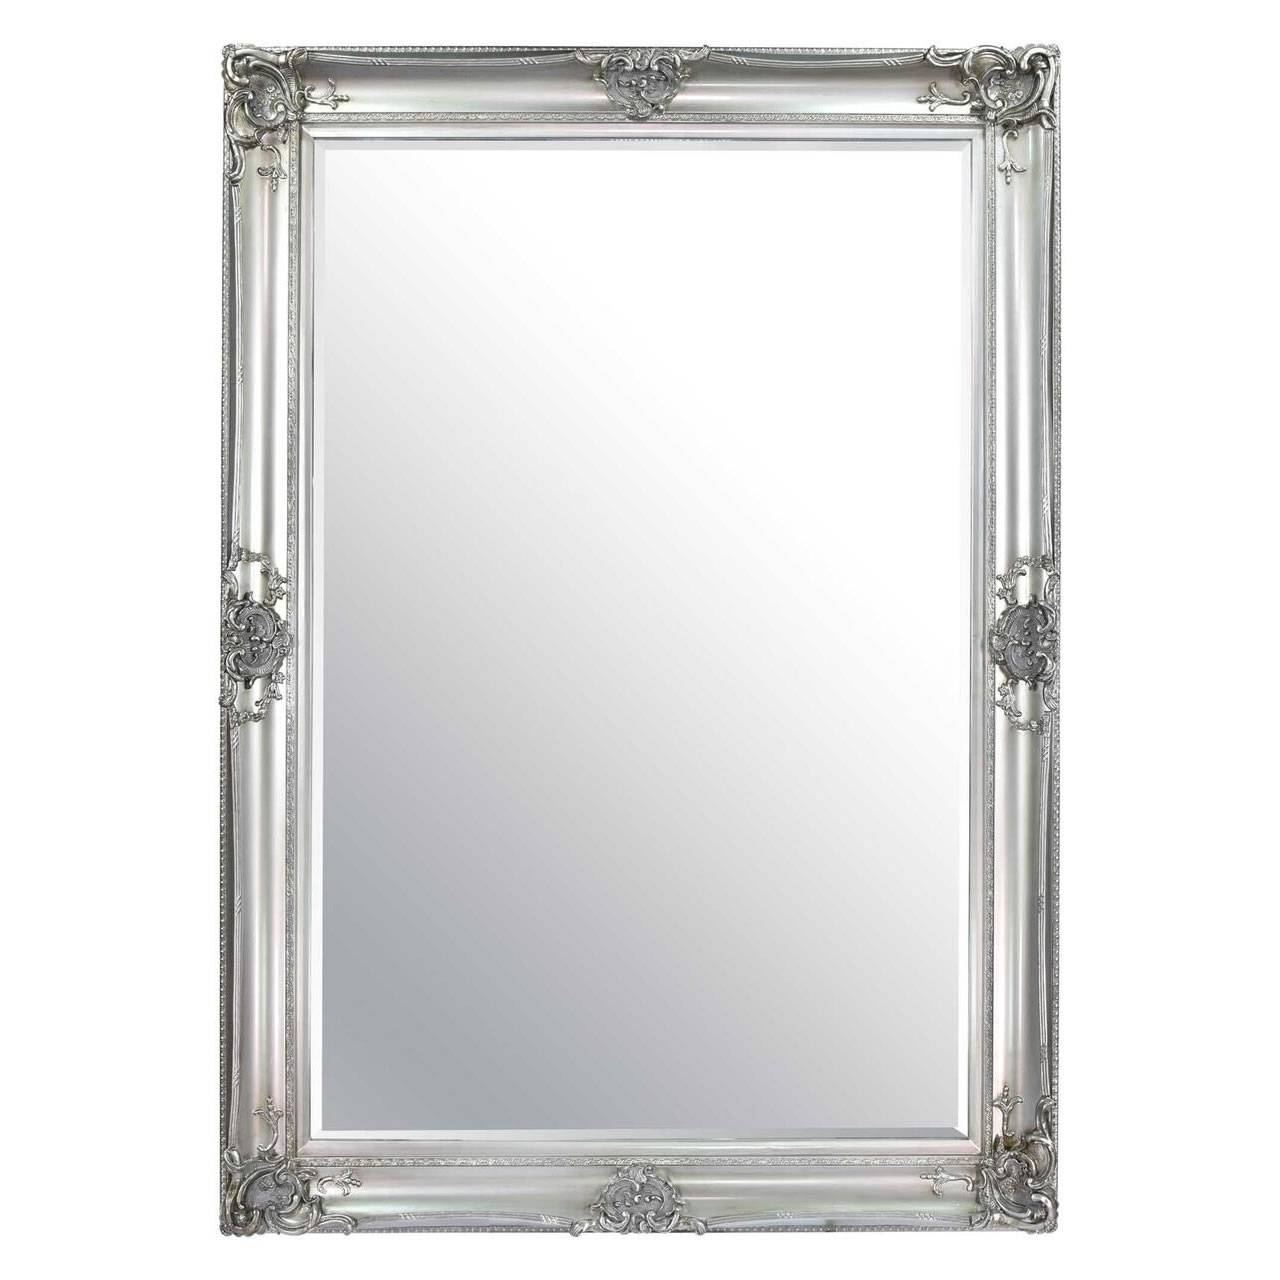 Ornate Framed Mirrors Intended For Silver Ornate Framed Mirrors (Photo 4 of 25)